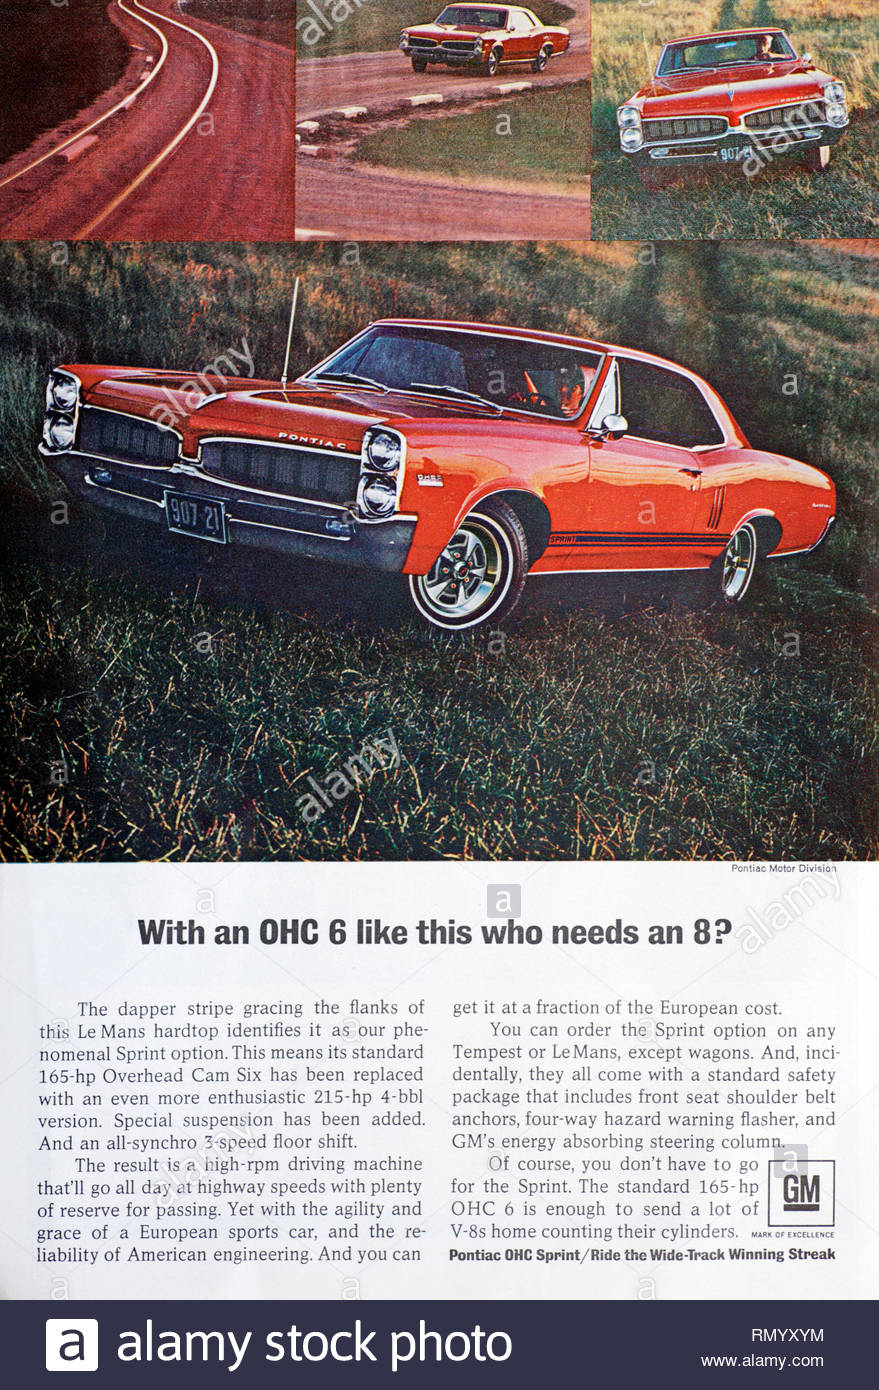 Vintage advertising for the Pontiac Le Mans OHC Sprint Car 1966 - Stock Image